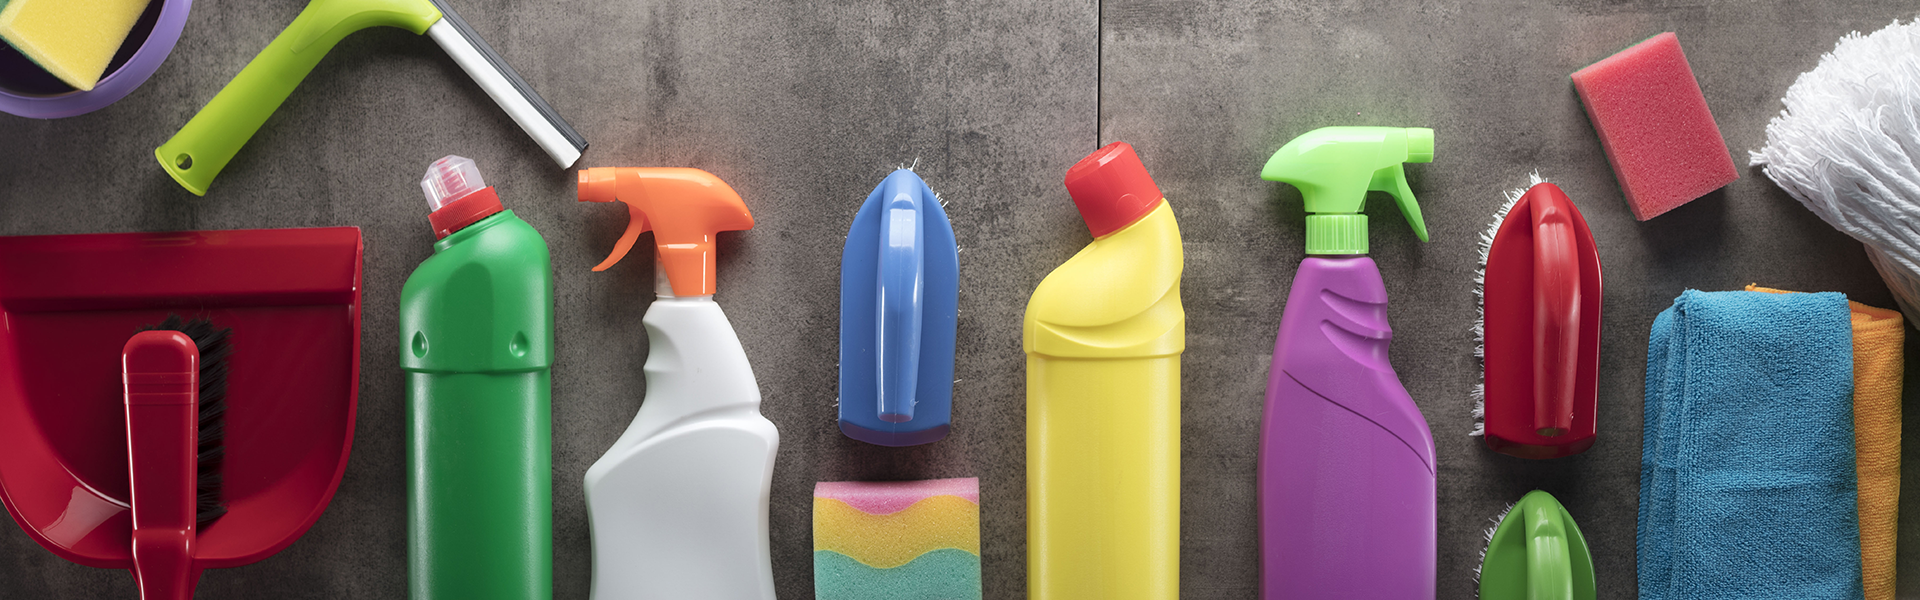 cleaning-supplies-1920x600po